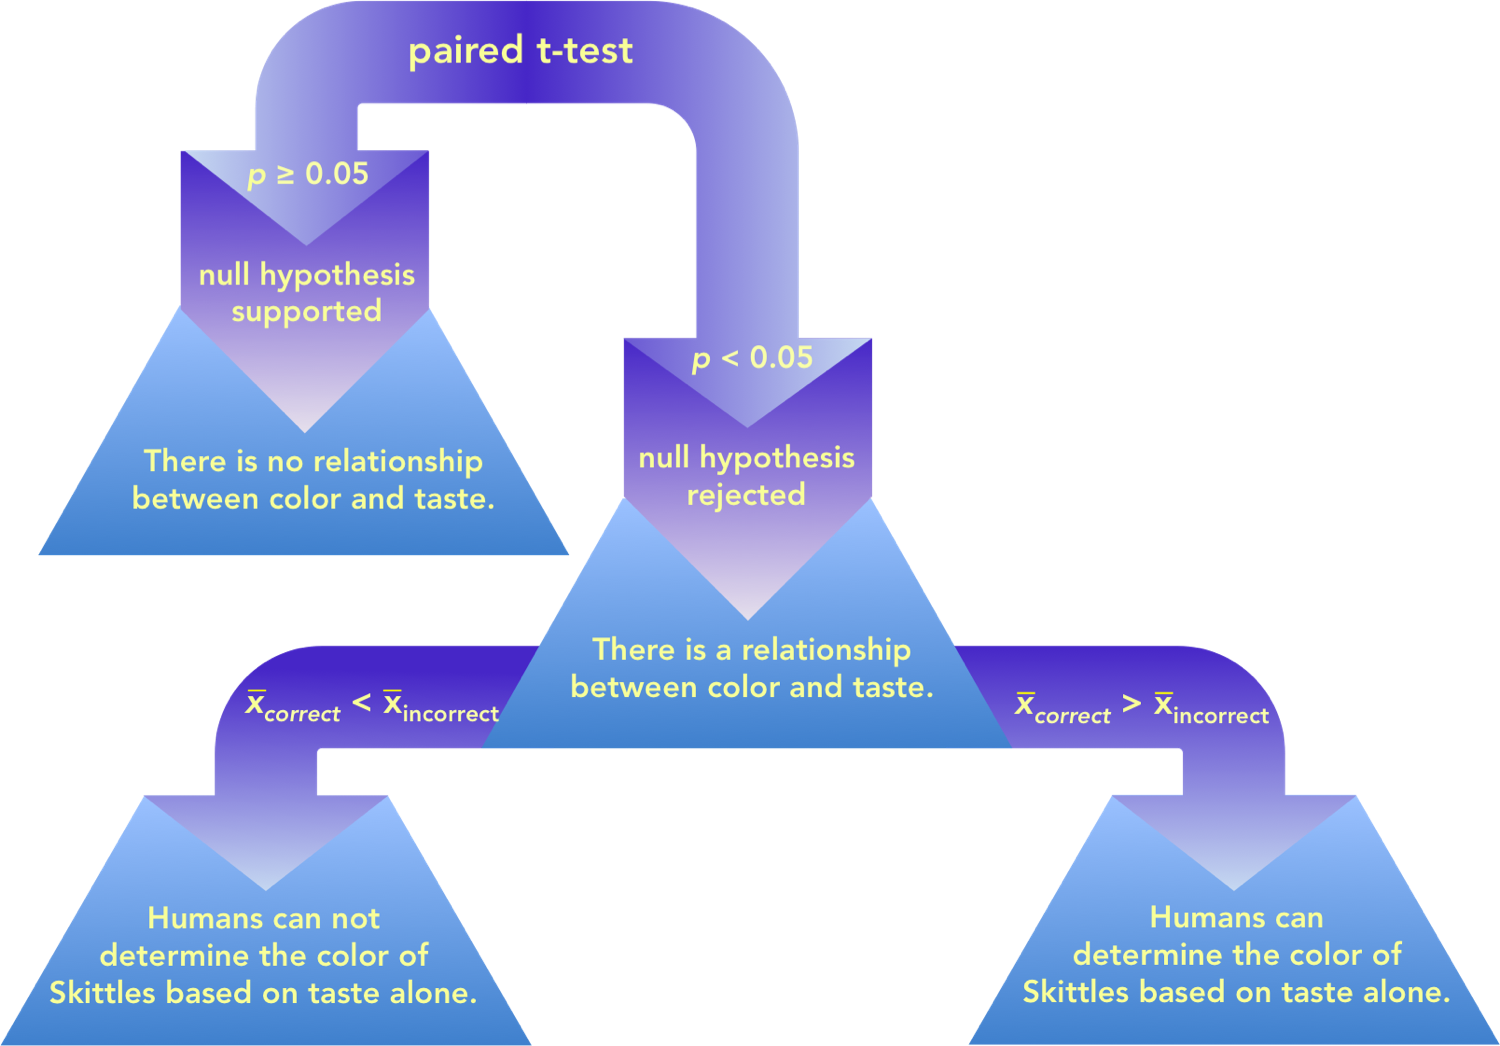 """Figure 2.   Decision tree to determine which hypothesis is supported.  Once you complete your statistical analysis. If your  p value is greater than 0.05, there is an insignificant different between the columns of numbers you are comparing. In this study, it would indicate that the mean (or average) of the two groups ( correct and  incorrect ) are not statistically different from each other. In this scenario, the conclusion would be that the results support the null hypothesis, and the conclusion would be """" From this experiment, it can not be determined whether humans can or can not determine the color based on taste. """" Another way of thinking about this is that people correctly and incorrectly identified the color at approximately an equal rate. If the  p  value is less than 0.05, this indicates there is a significant difference between the number of Skittles correctly identified and incorrectly identified. This doesn't automatically indicate that people are more likely to correctly identify the color. The next step is to look at the means of the two groups of numbers. If the mean for correct is smaller than the mean for incorrect, this supports the alternative hypothesis, """"Humans can not identify the color based on taste alone,"""" indicating people get it wrong more often than they get it right. If the mean for correct is greater than the mean for incorrect, the other alternative hypothesis, """"Humans can identify the color based on taste alone."""""""